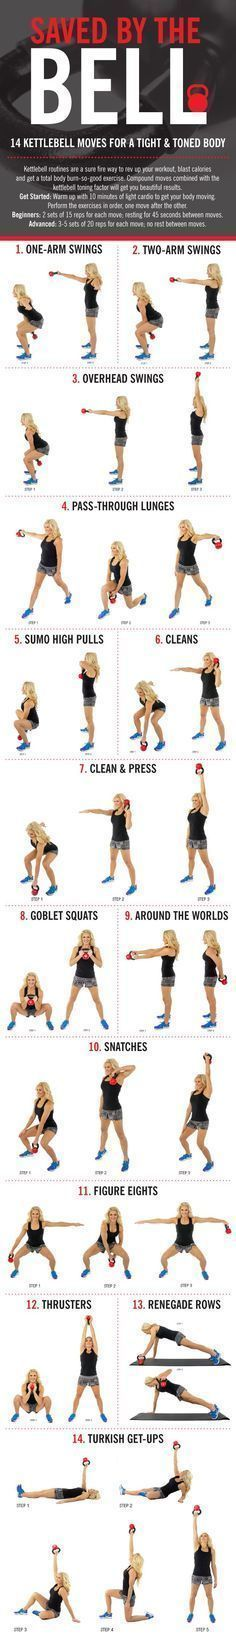 TORCH calories with our favorite kettle bell moves. Repeat circuit 2-3 times through!